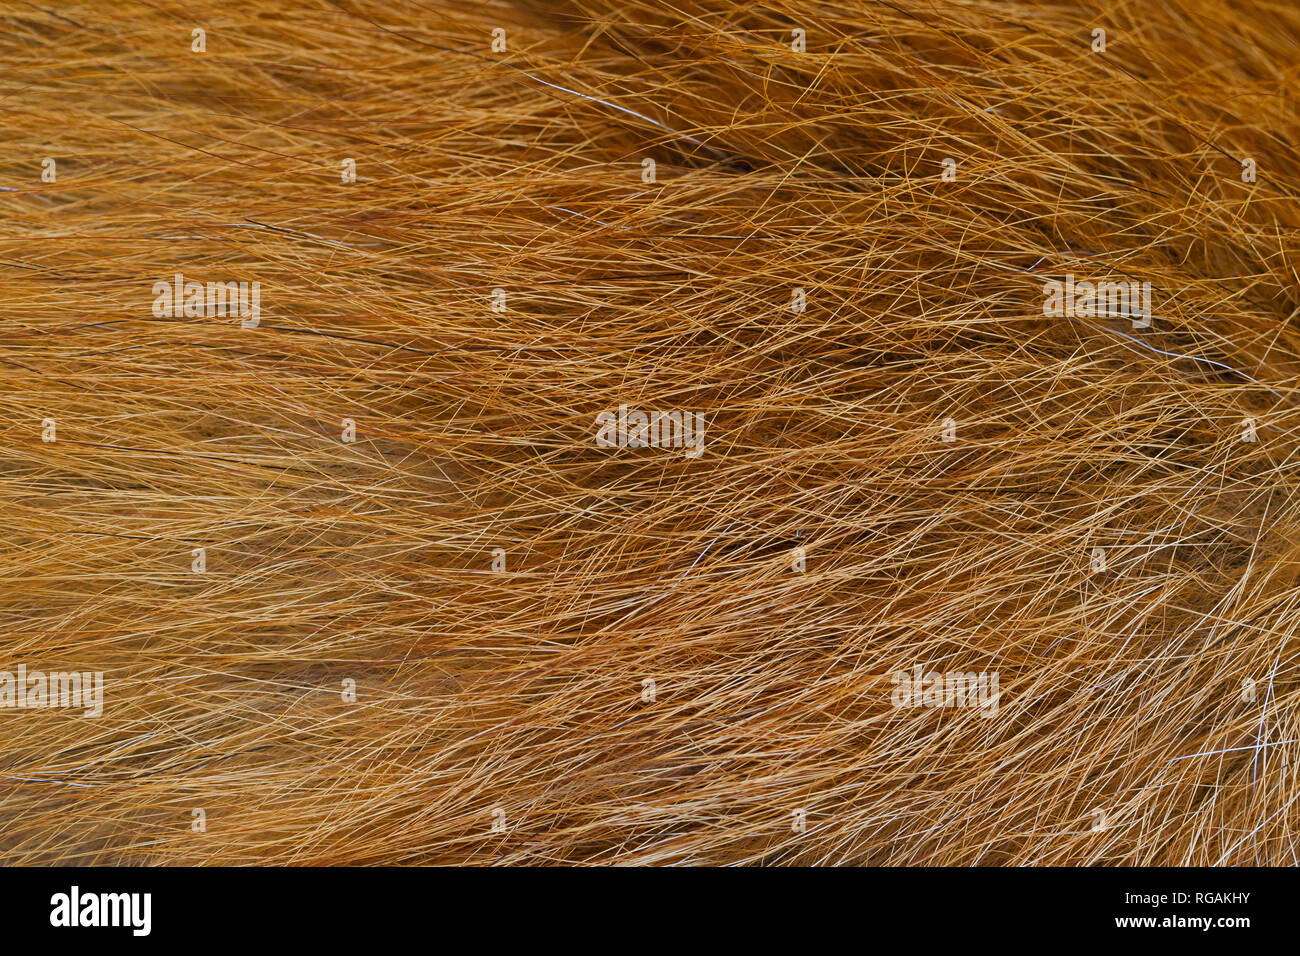 Red fox (Vulpes vulpes) close-up of the guard hairs in dense coat / fur - Stock Image